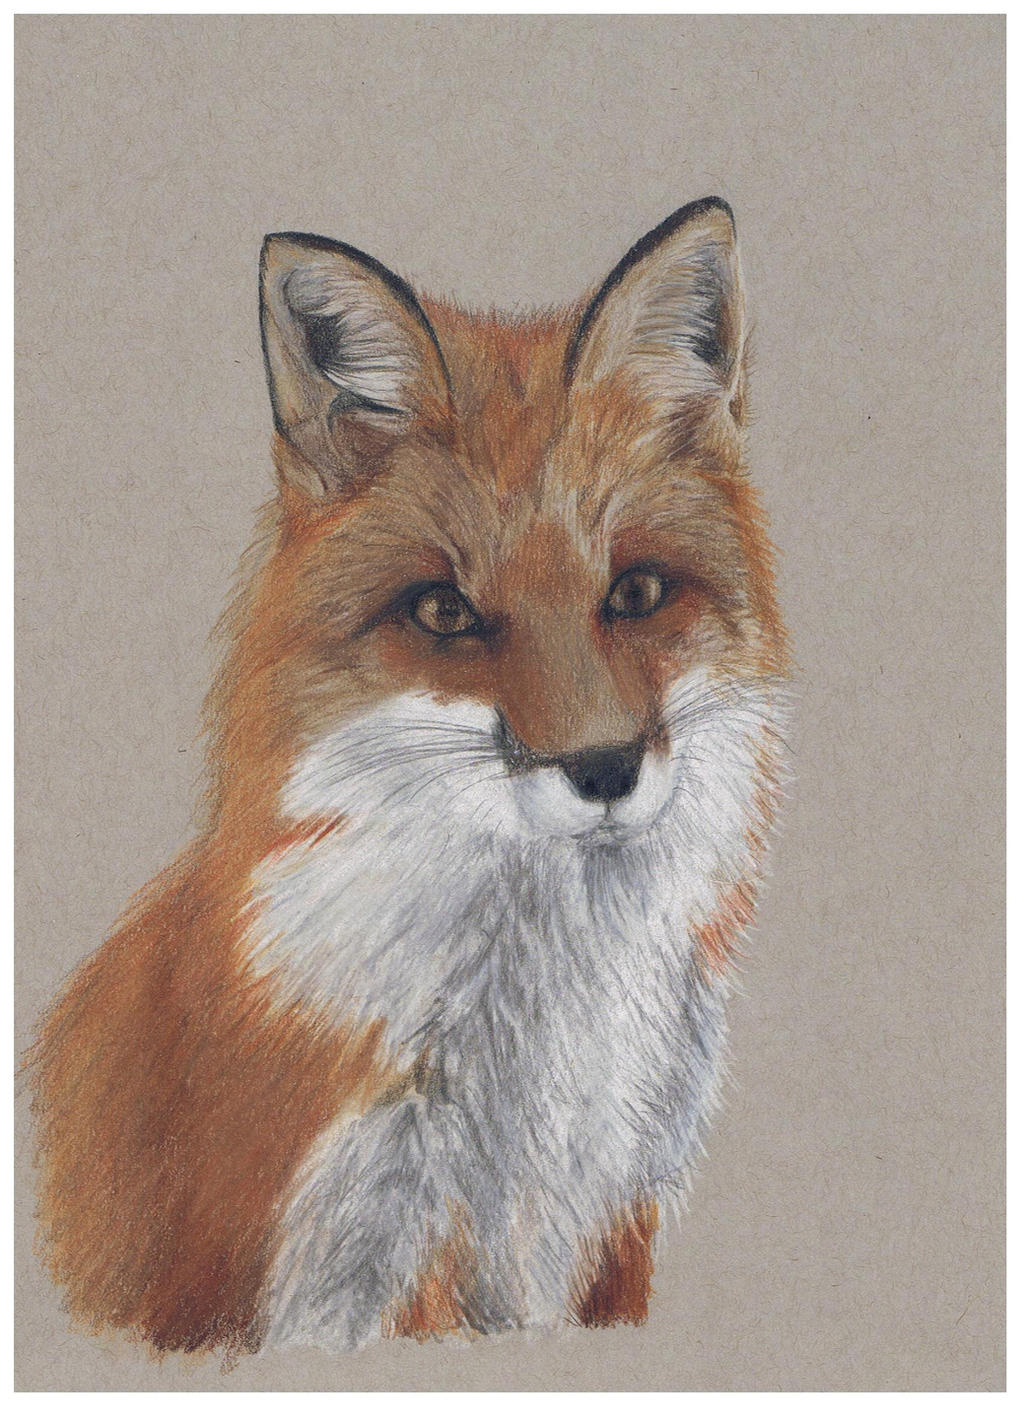 Fox portrait - colored pencil by miemotio